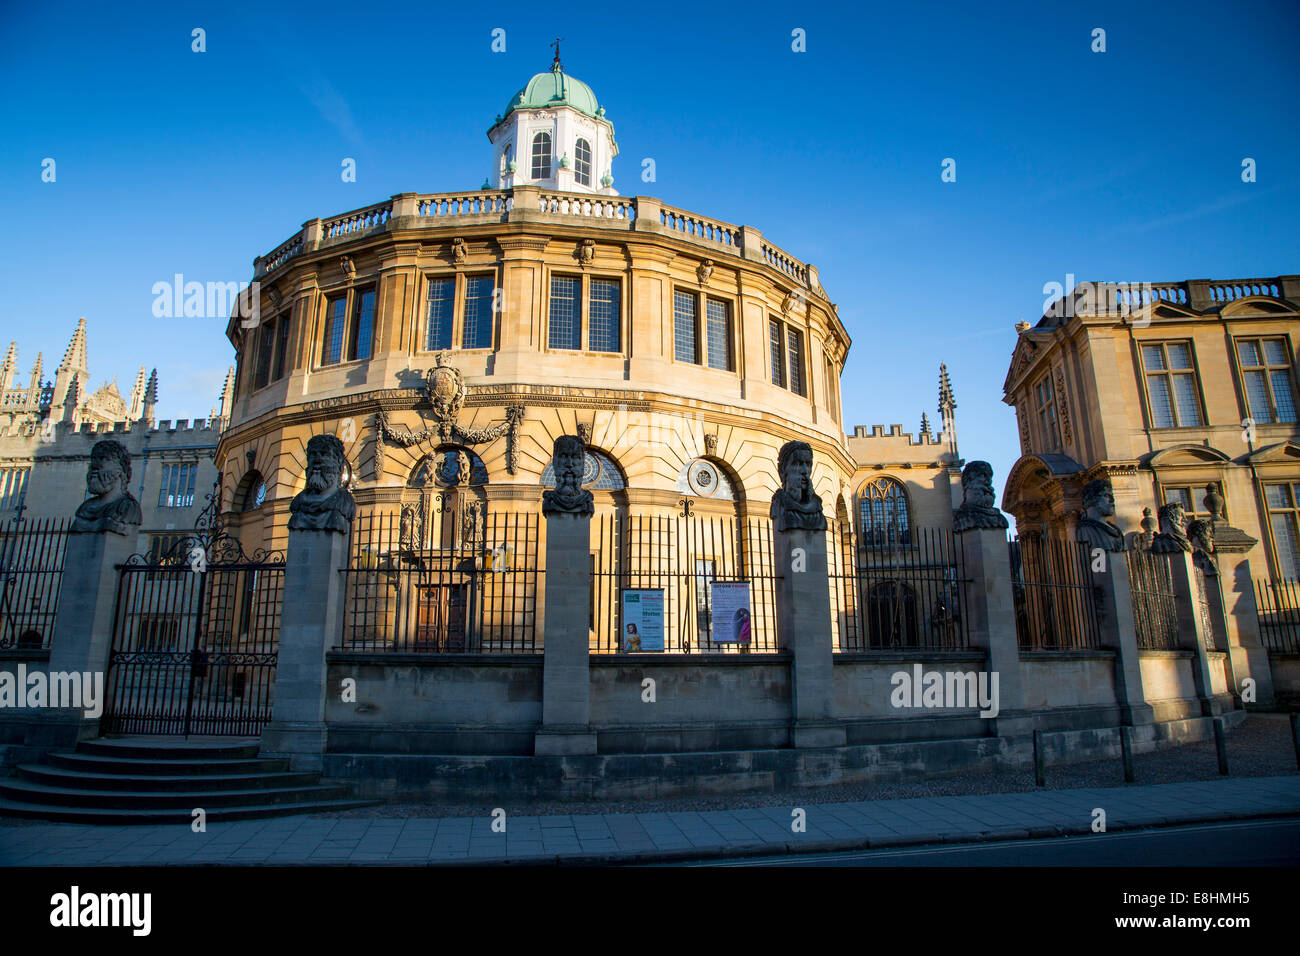 The Sheldonian Theatre - designed by Christopher Wren, built 1664-1668, Oxford, Oxfordshire, England - Stock Image